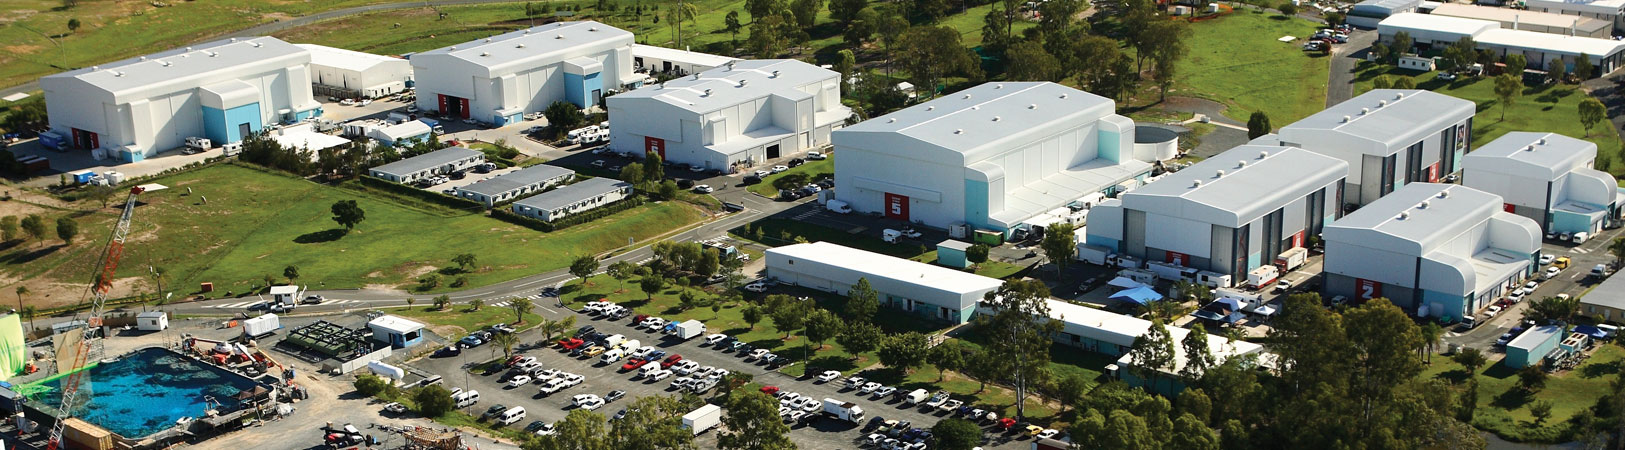 Aerial view of the Gold Coast location of NYFA